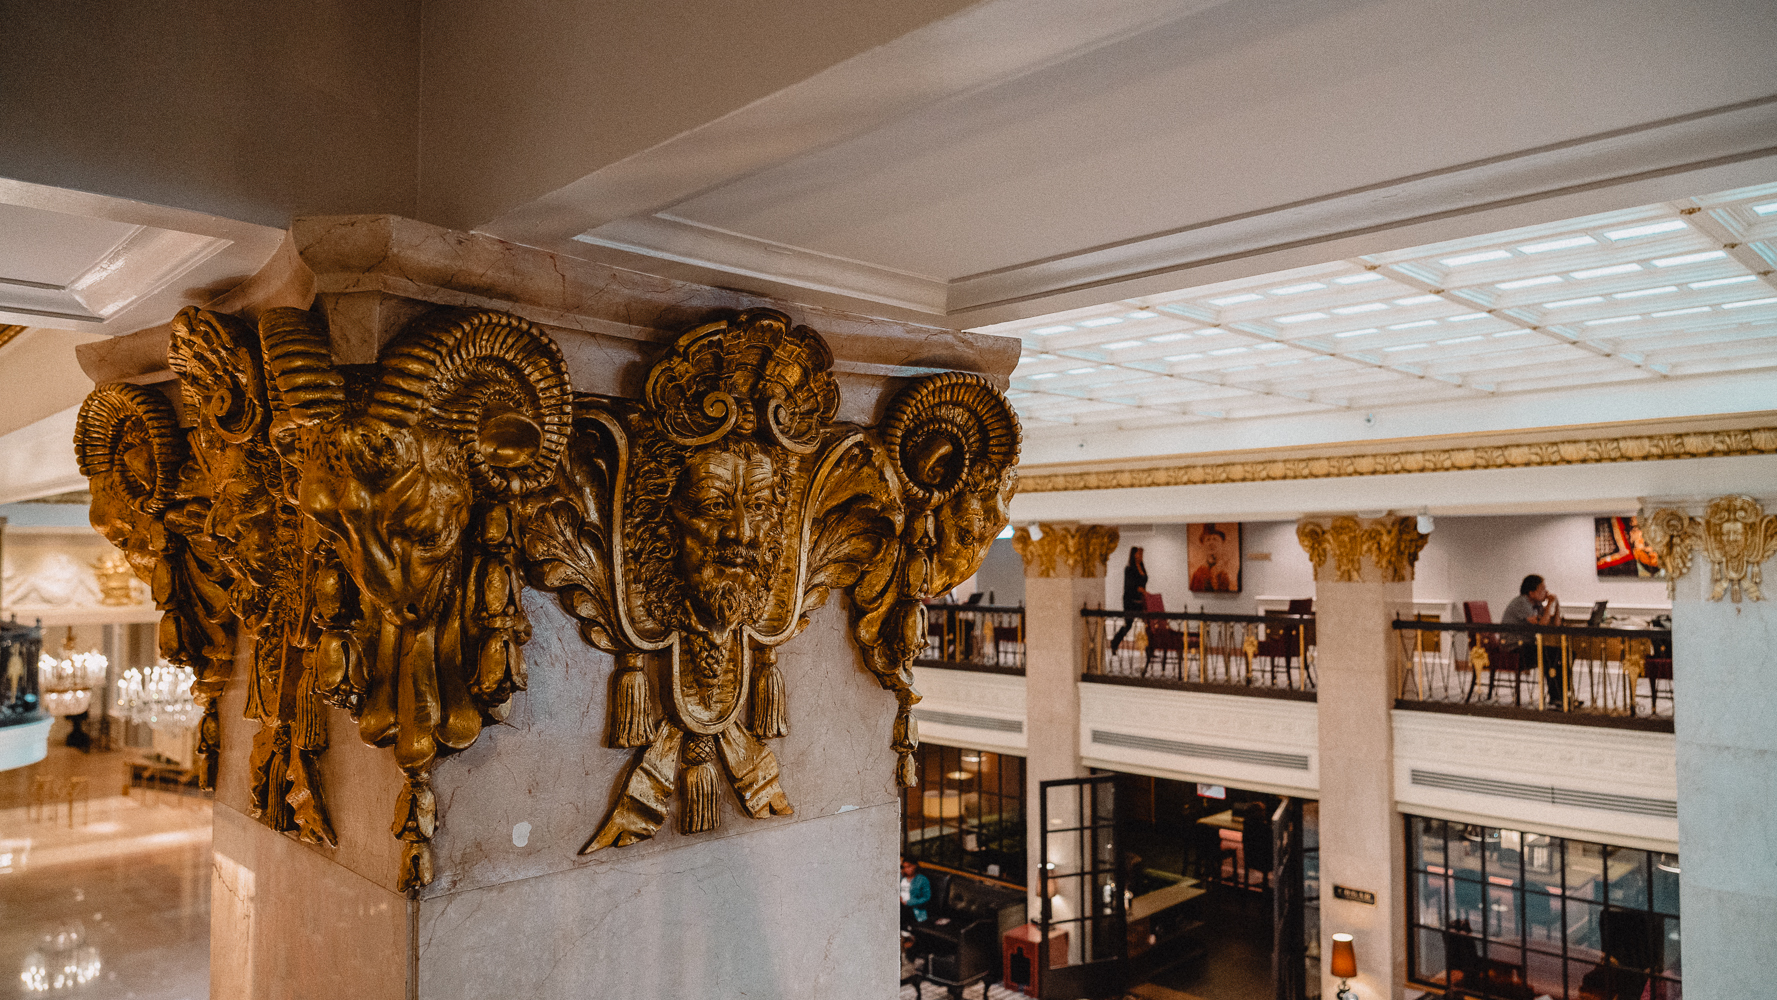 Details at the Mayflower Hotel.